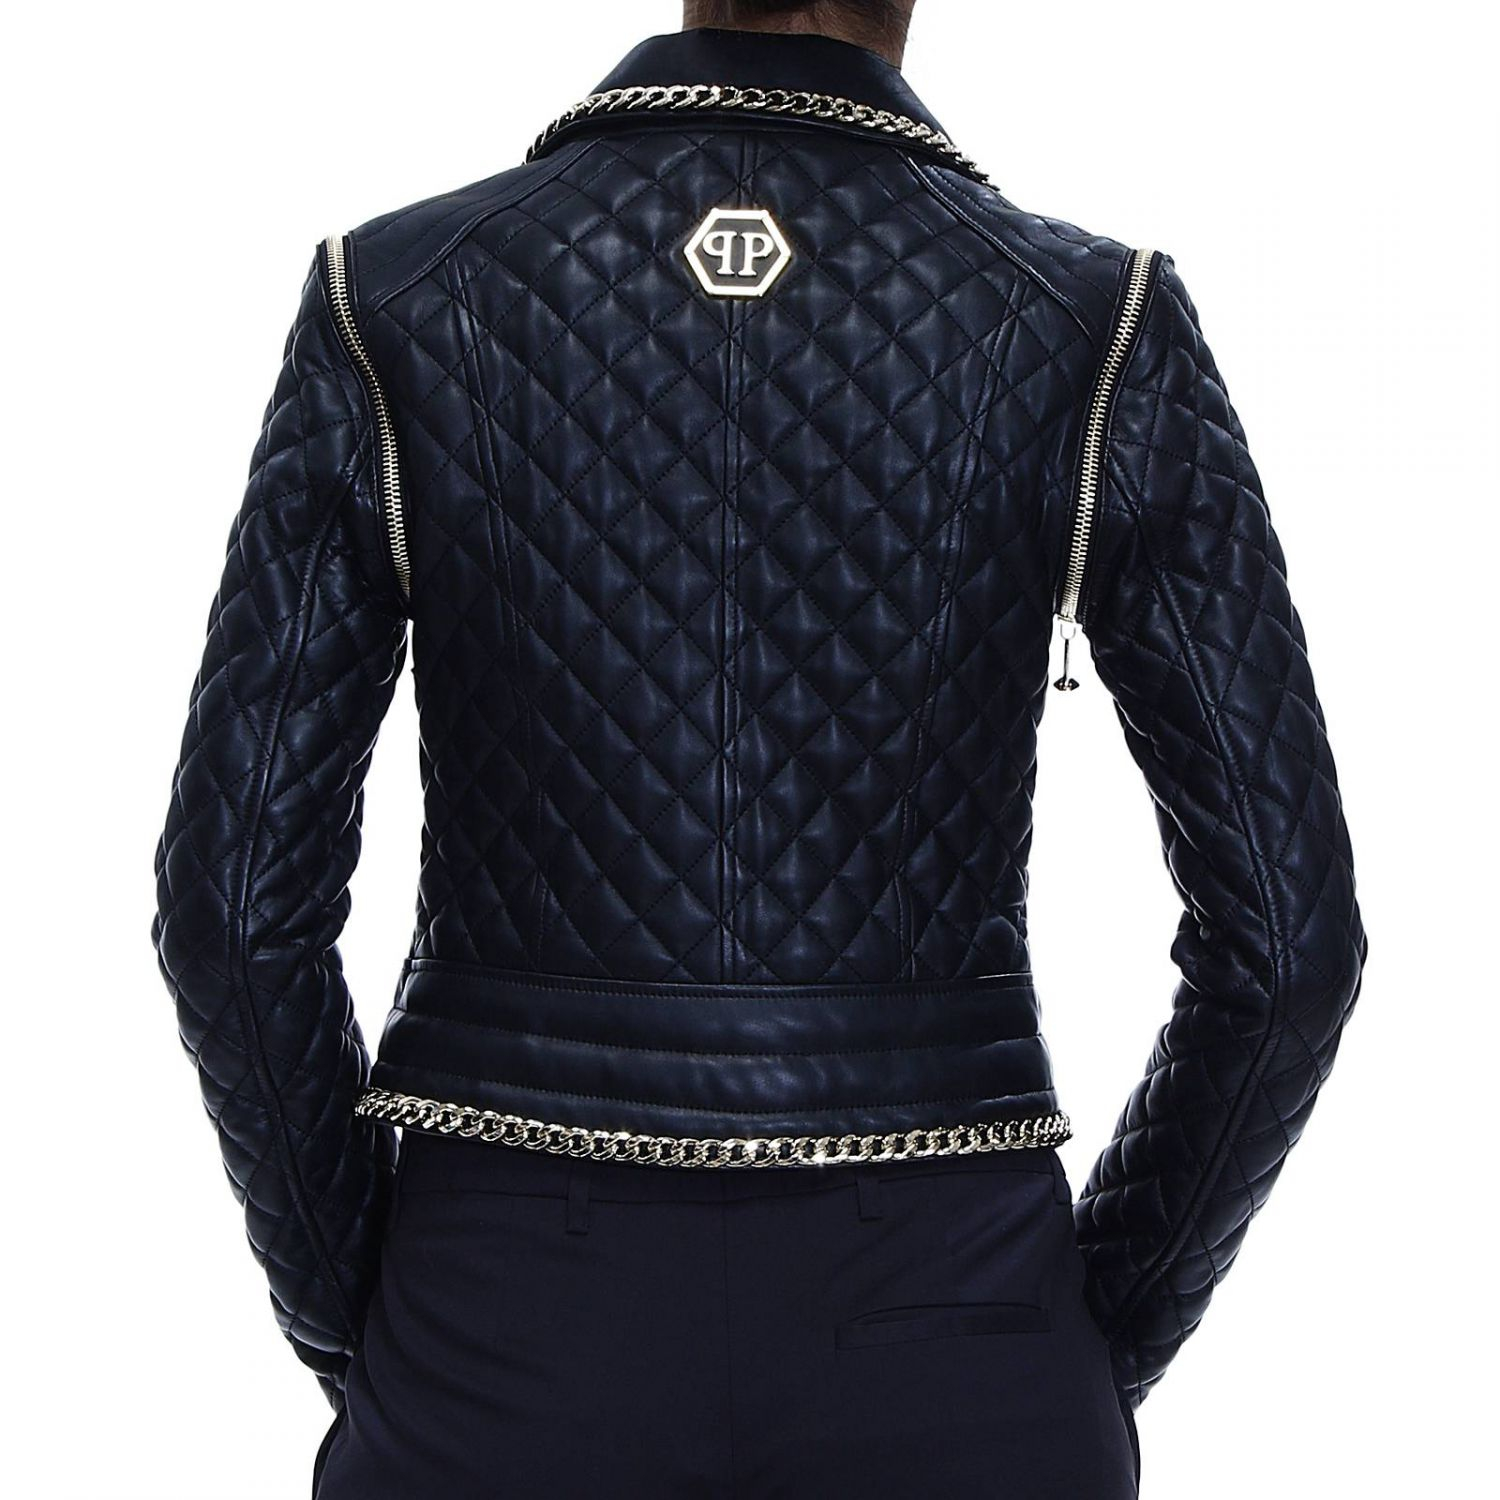 2eae2fa62f0 Philipp Plein Jacket Woman in Black - Lyst